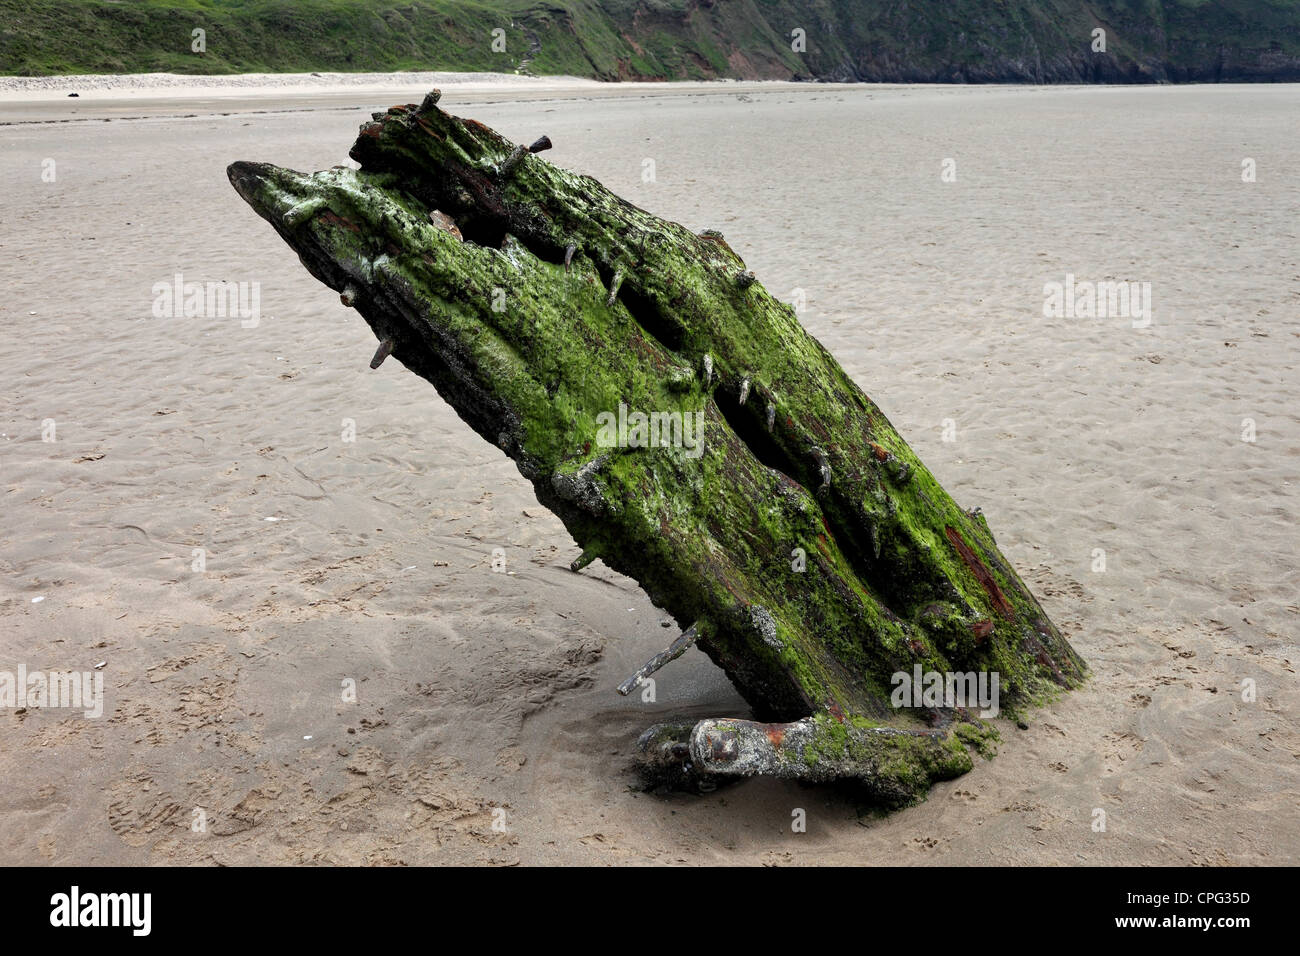 The Remains of the Norwegian Ship The Helvetia Which was Wrecked on Rhossili Beach in 1887 Gower Wales UK - Stock Image